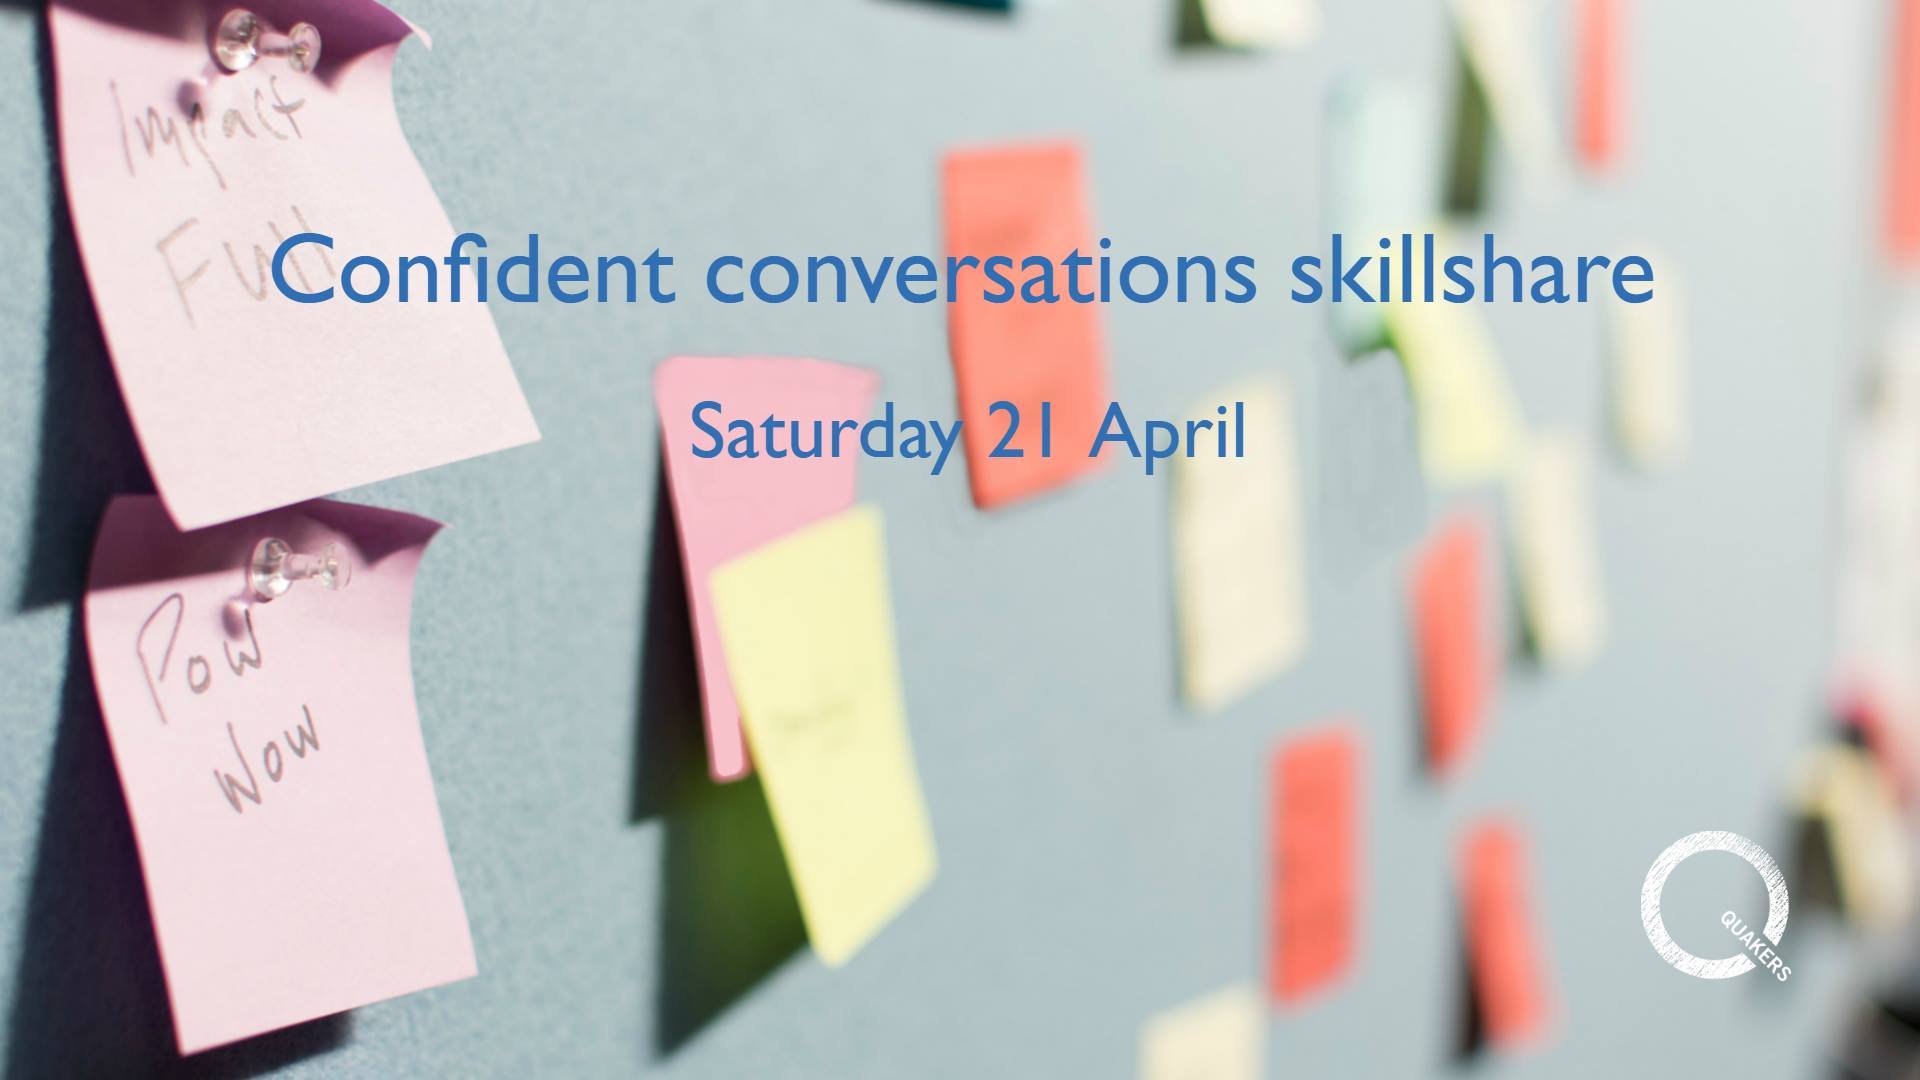 Wall of colourful post-its overlaid with event title: Confident conversations skillshare